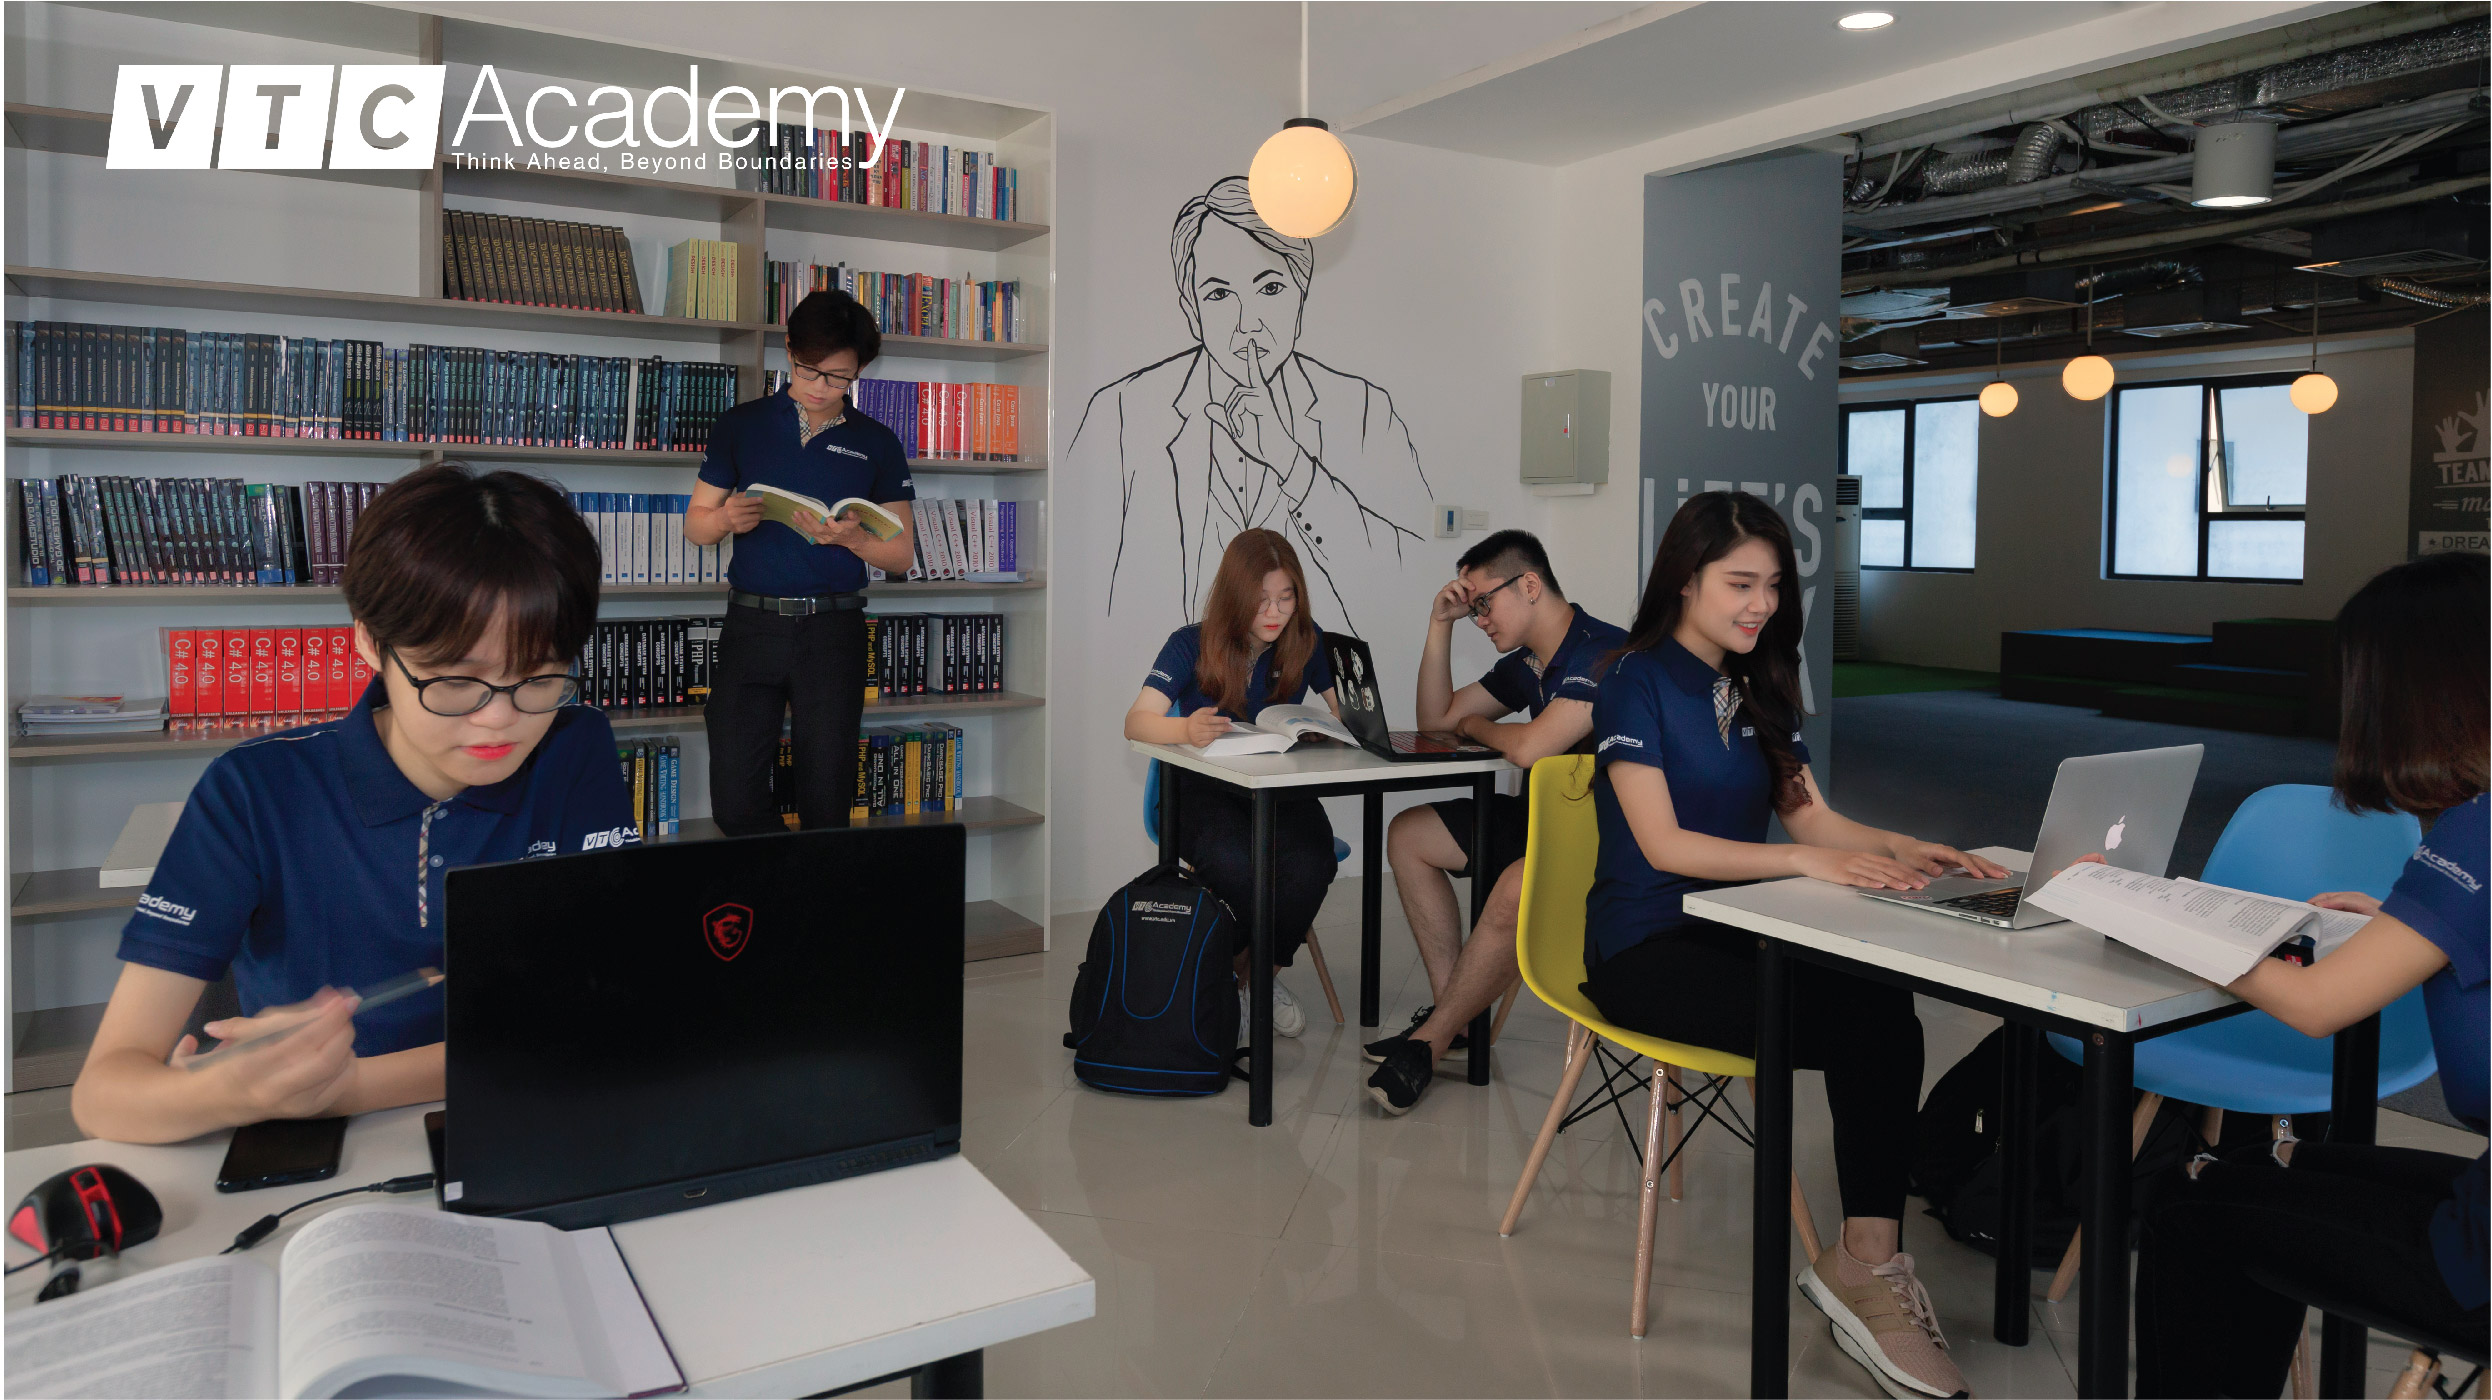 VTC Academy fully upgraded facilities to welcome the new school year